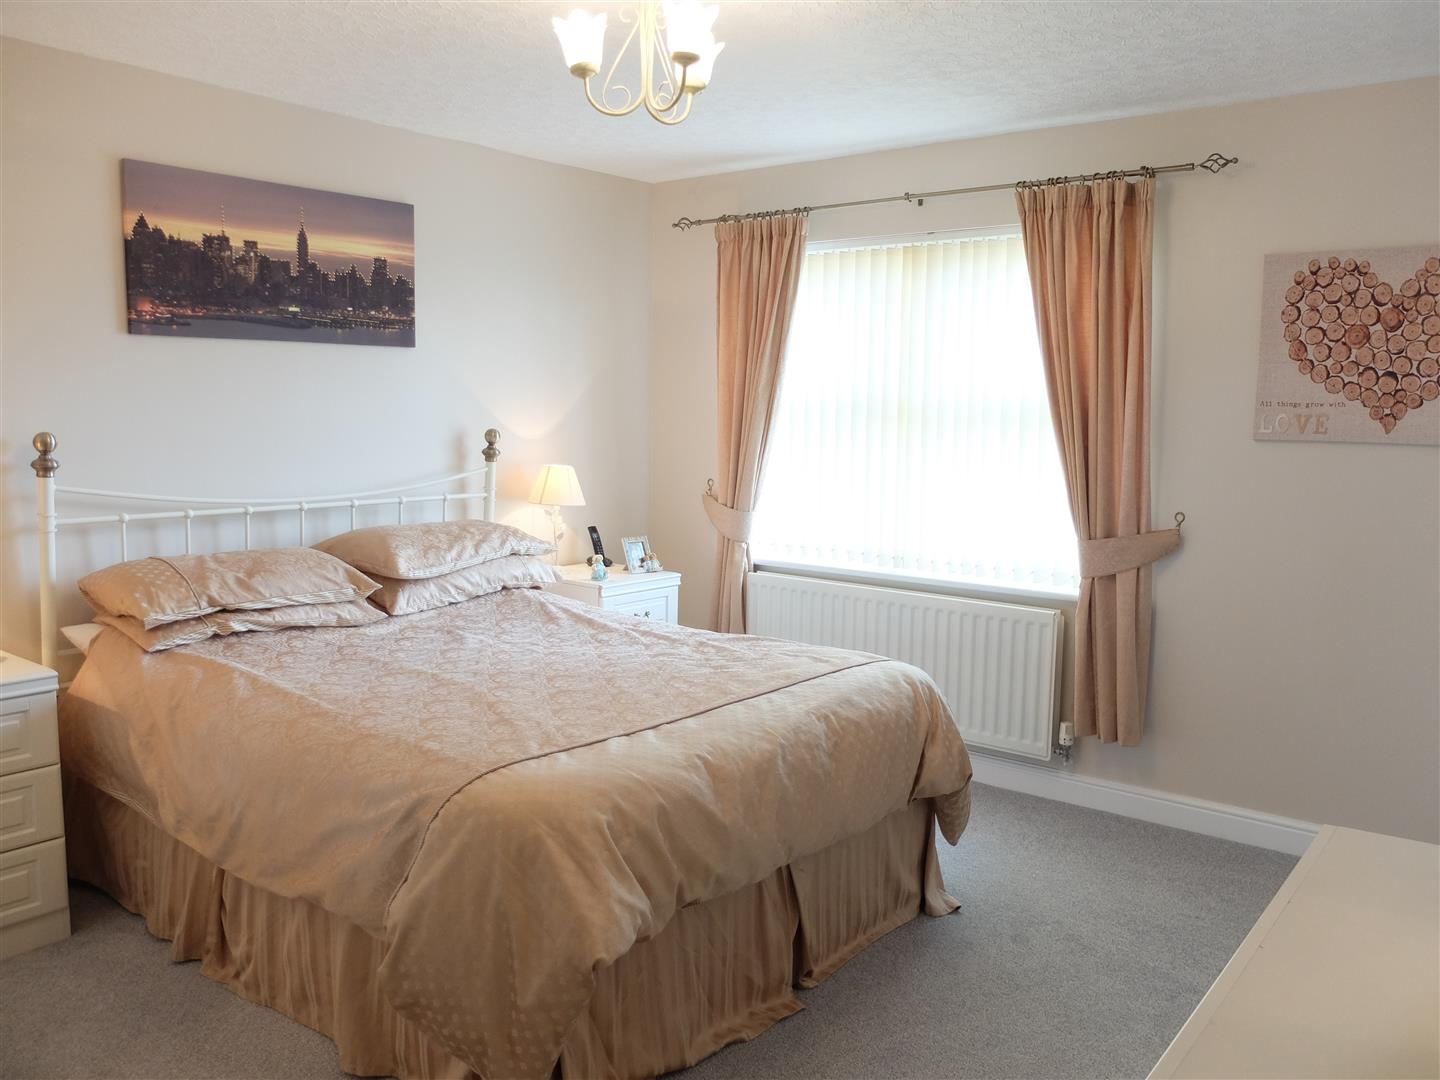 4 Bedrooms House - Detached For Sale 34 The Paddocks Carlisle 219,950